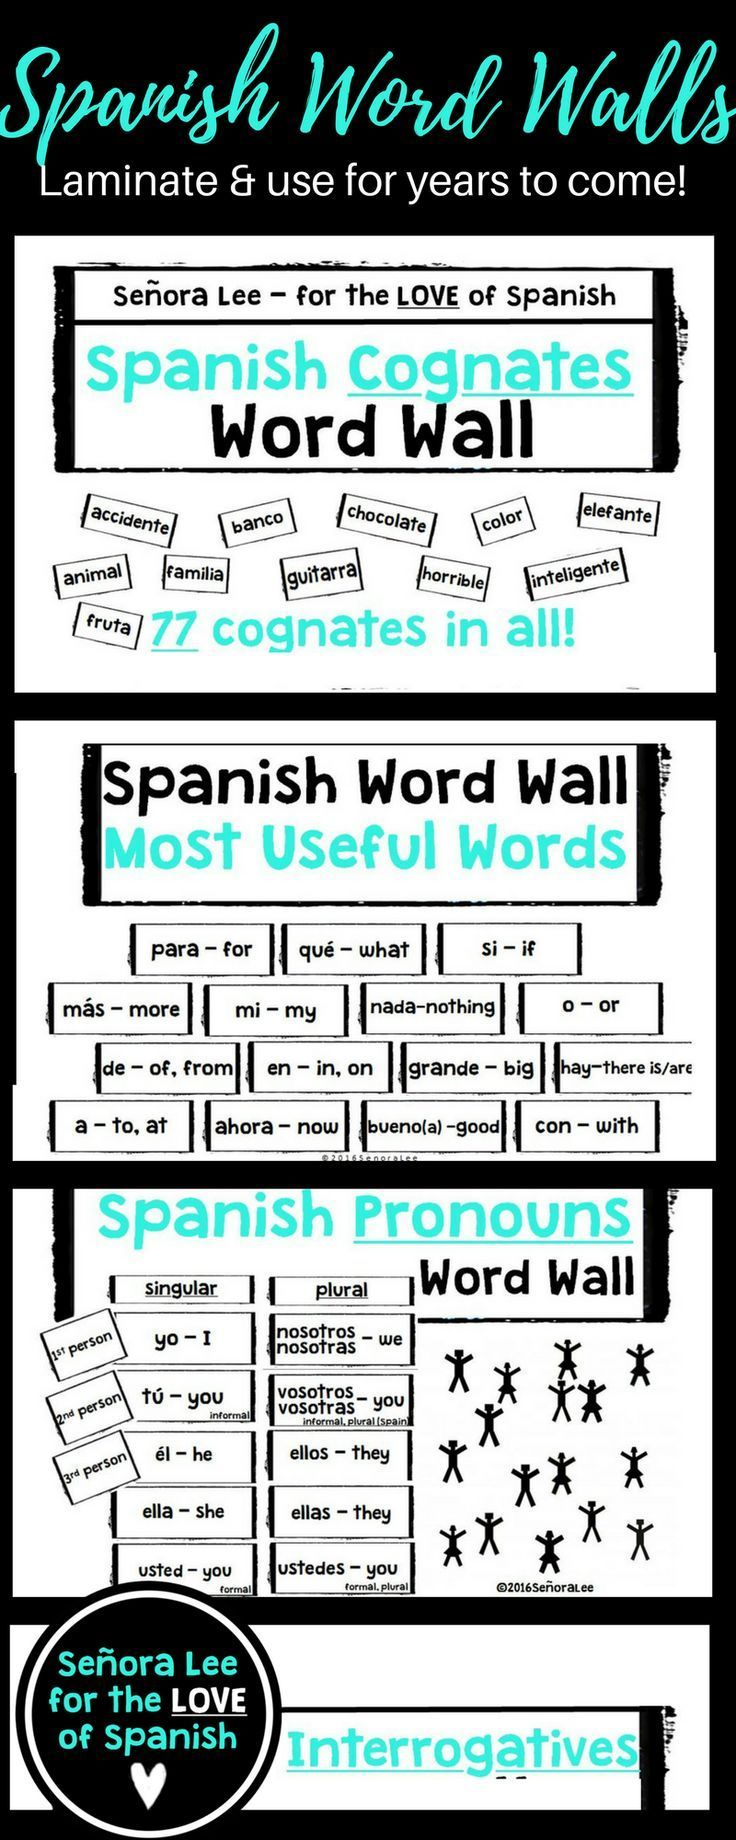 "Includes 4 Spanish word walls. Big & bold, black & white bricks with essential Spanish vocab. Easy to read. Great visual resource to continually reinforce vocab.  What teachers are saying:  ""I am super excited to put up my word walls!"""